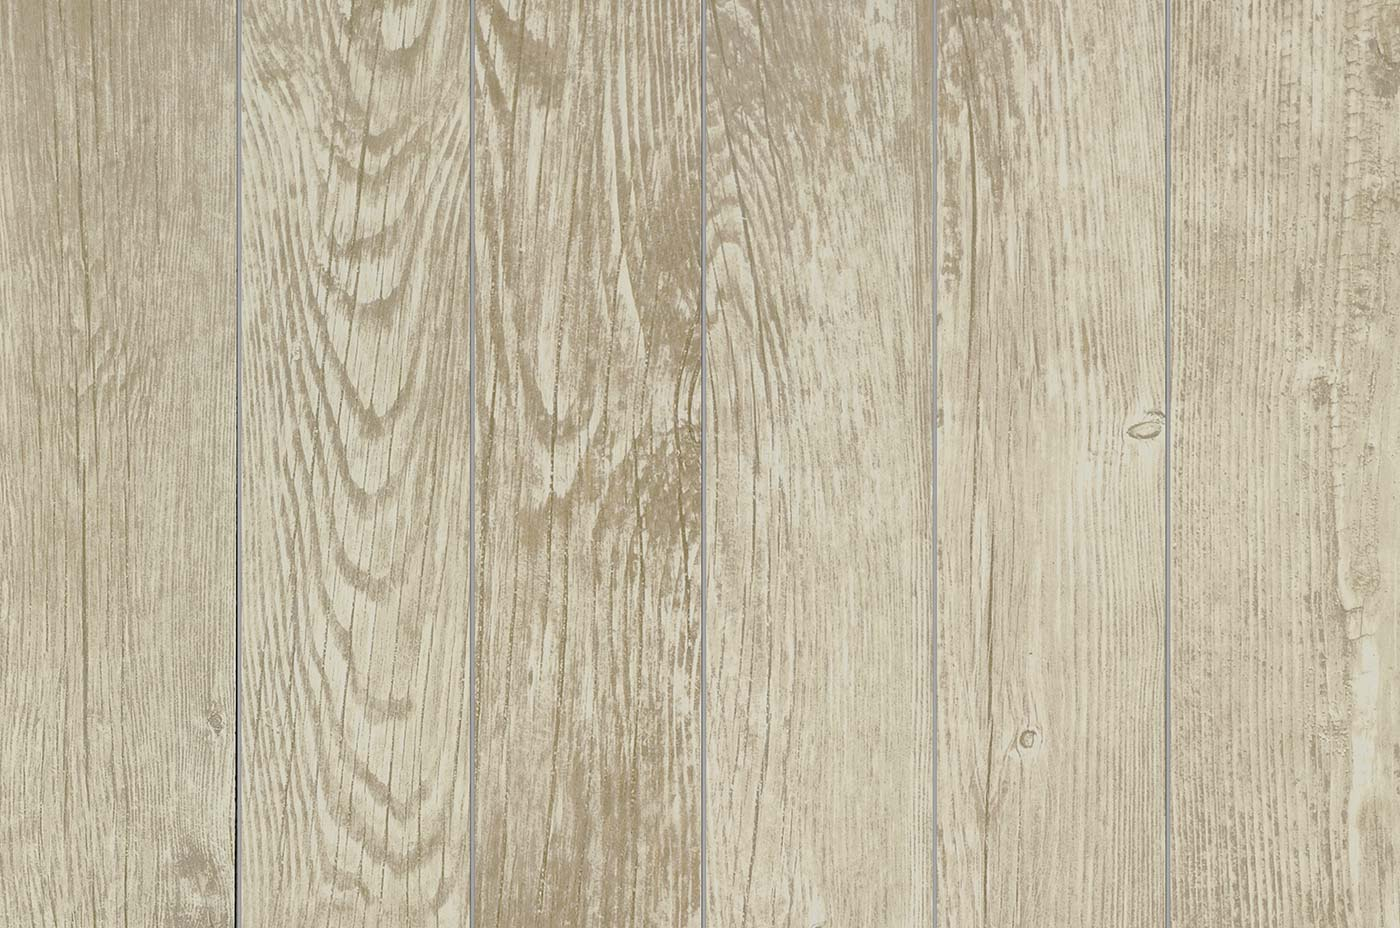 Florim forest liana natural finish 6 x 24 tile flooring florim forest liana 6quot x 24quot dailygadgetfo Image collections